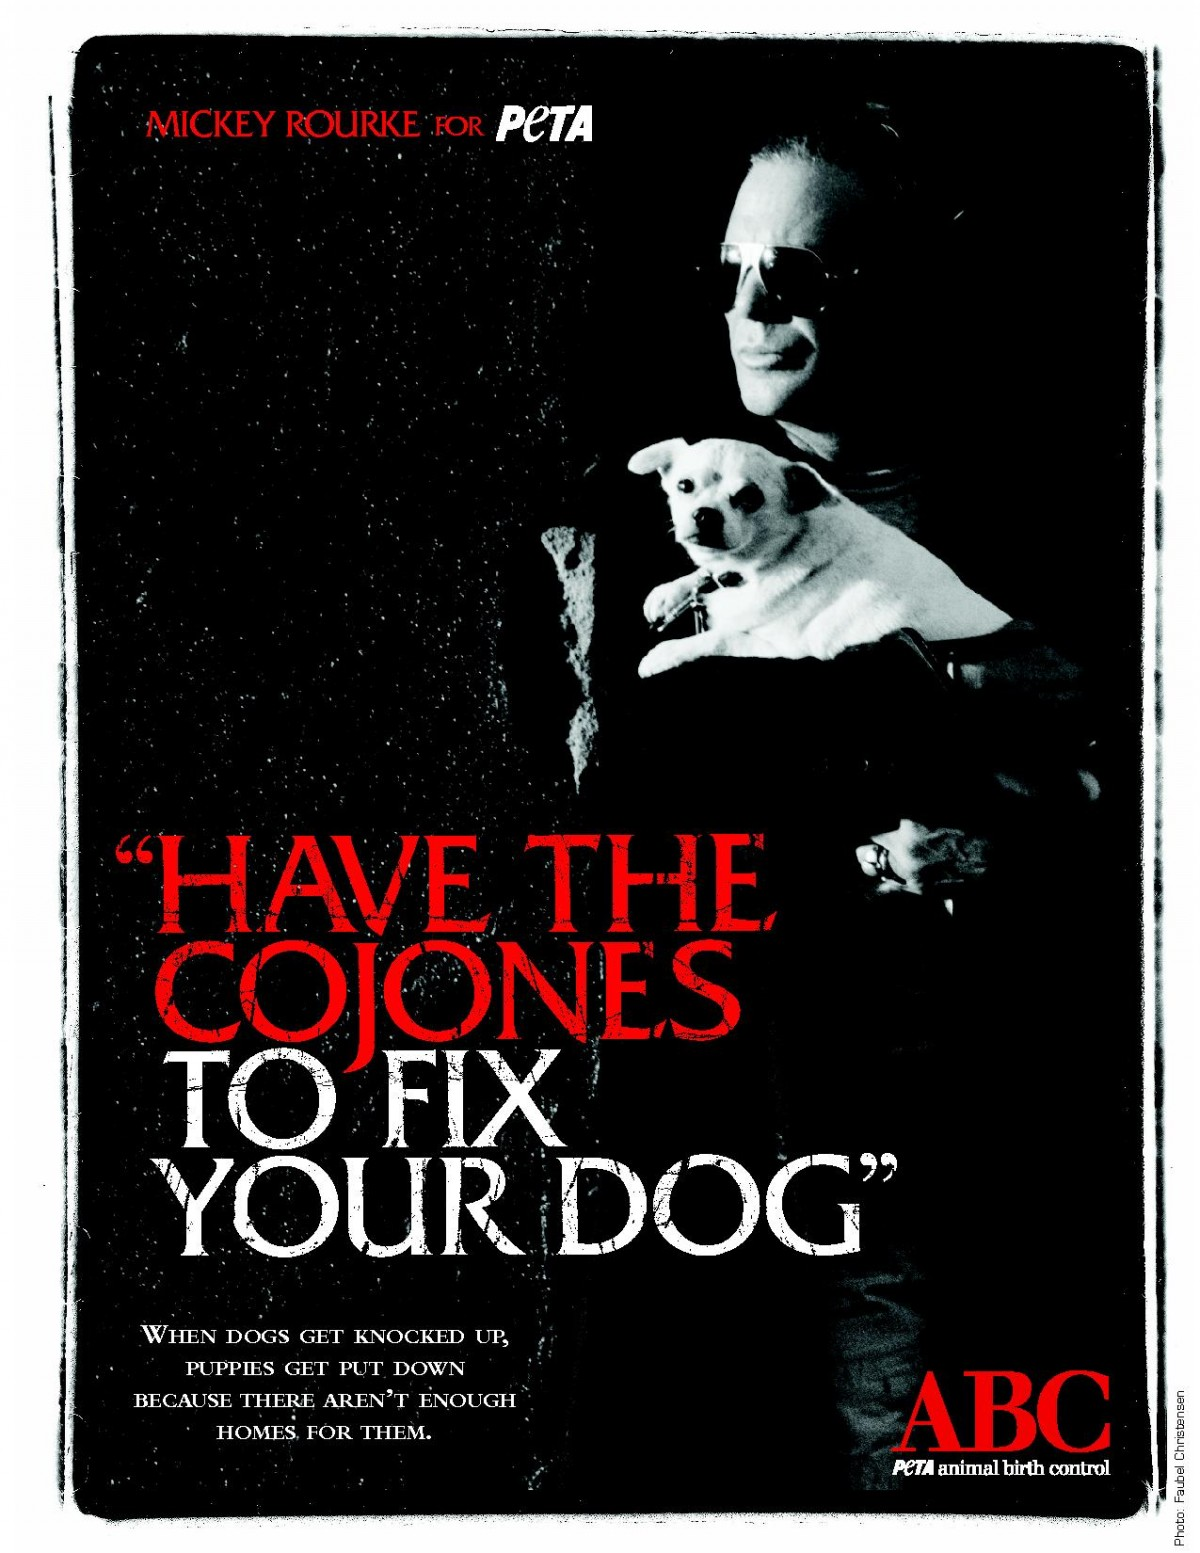 Mickey Rourke Wants You to Spay or Neuter Your Dog